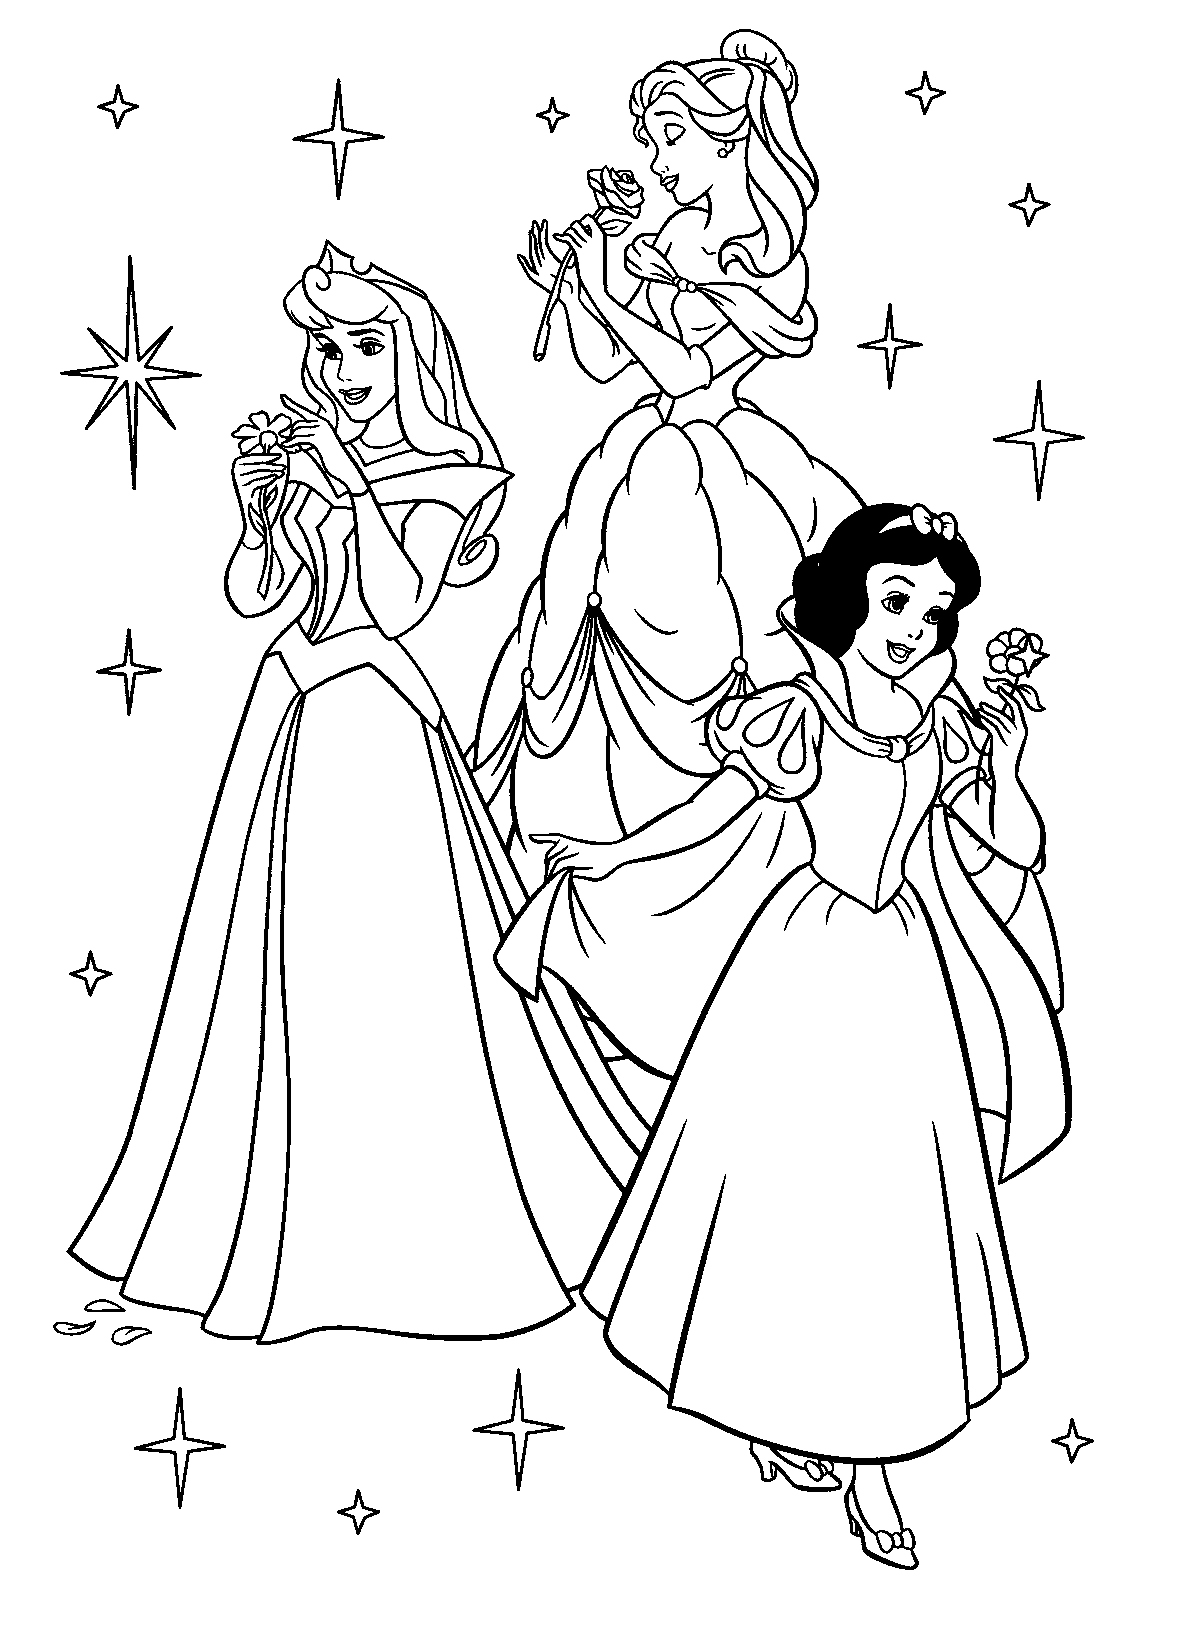 Disney Princesses Coloring Pages Free Coloring Pages Pinterest